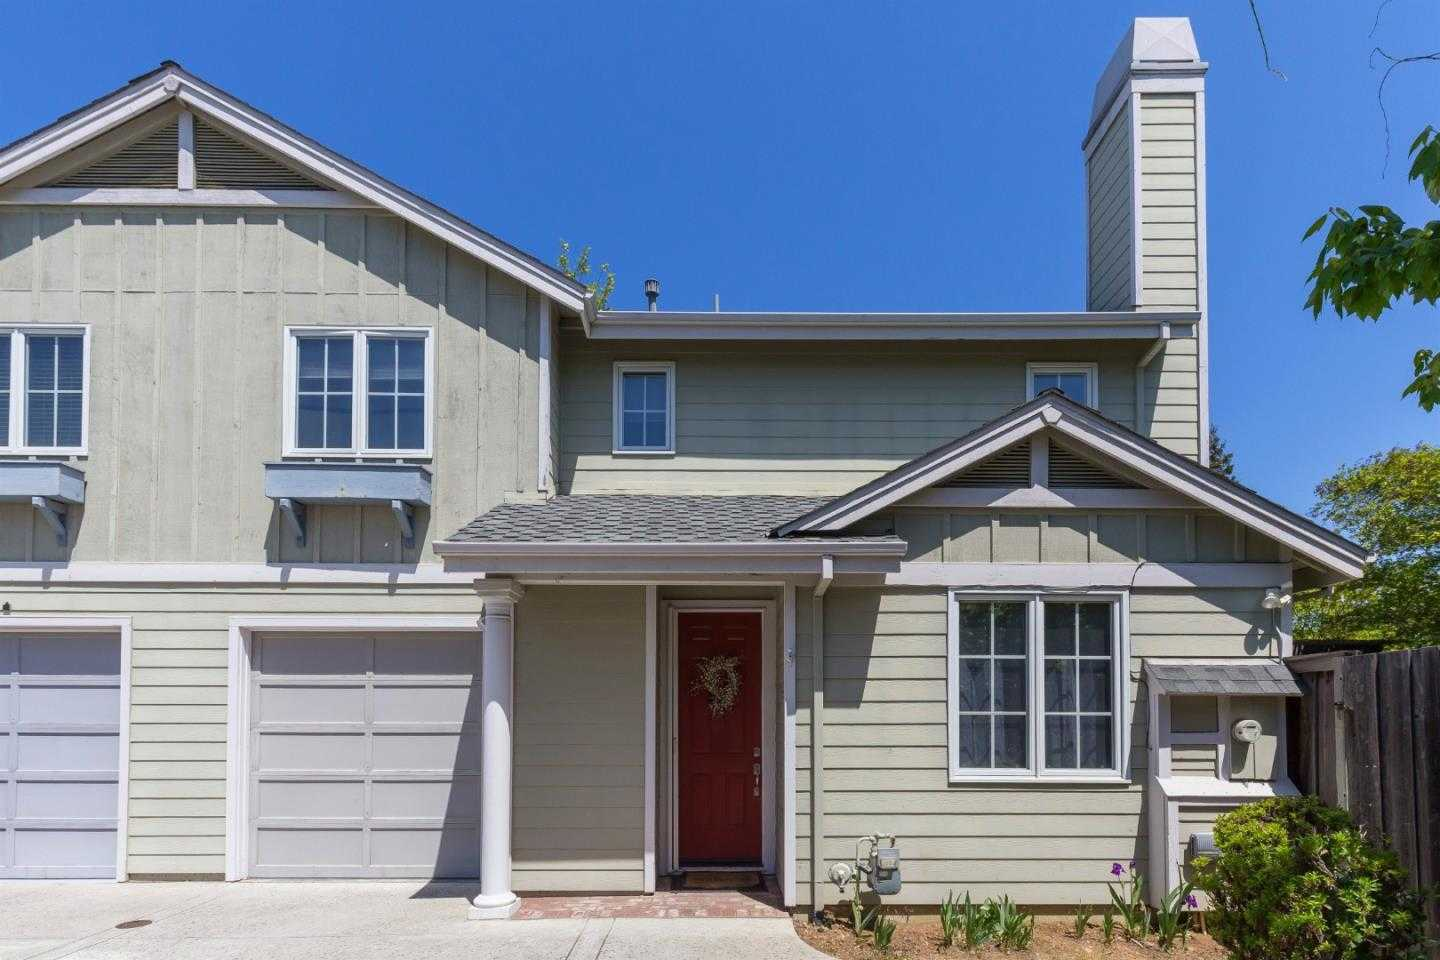 $1,900,000 - 3Br/3Ba -  for Sale in Cupertino